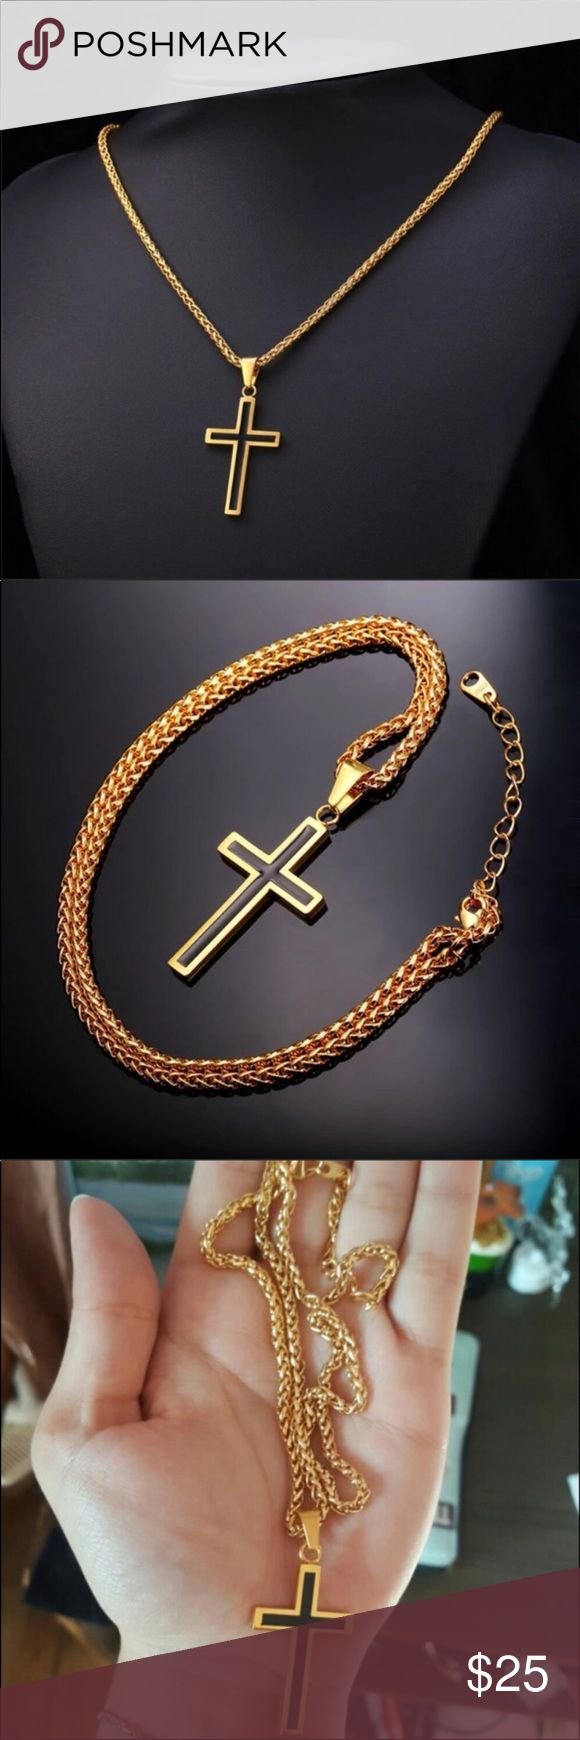 "new 18k gold cross necklace Brand new. High quality 18K Gold Filled Cross INRI Crucifix Jesus Piece Pendant & Necklace Chain For Men Gift Vintage Christian Jewelry and it won't tarnish or fade.  Chain length: 22"" Accessories Jewelry"